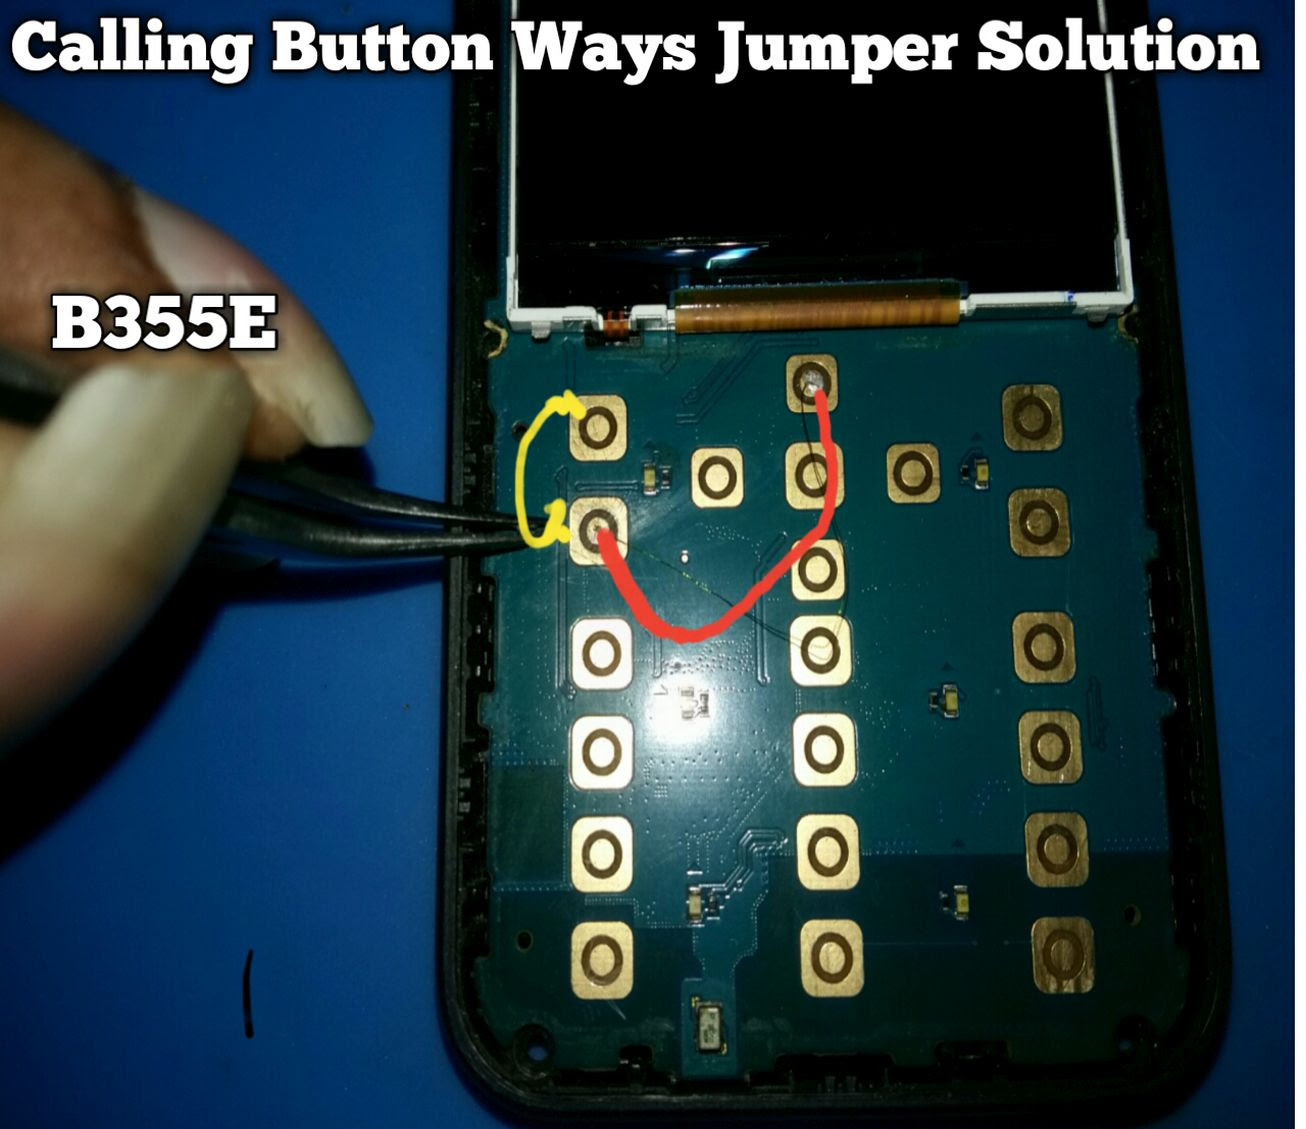 Samsung B355E Call Button keys not working keypad problem